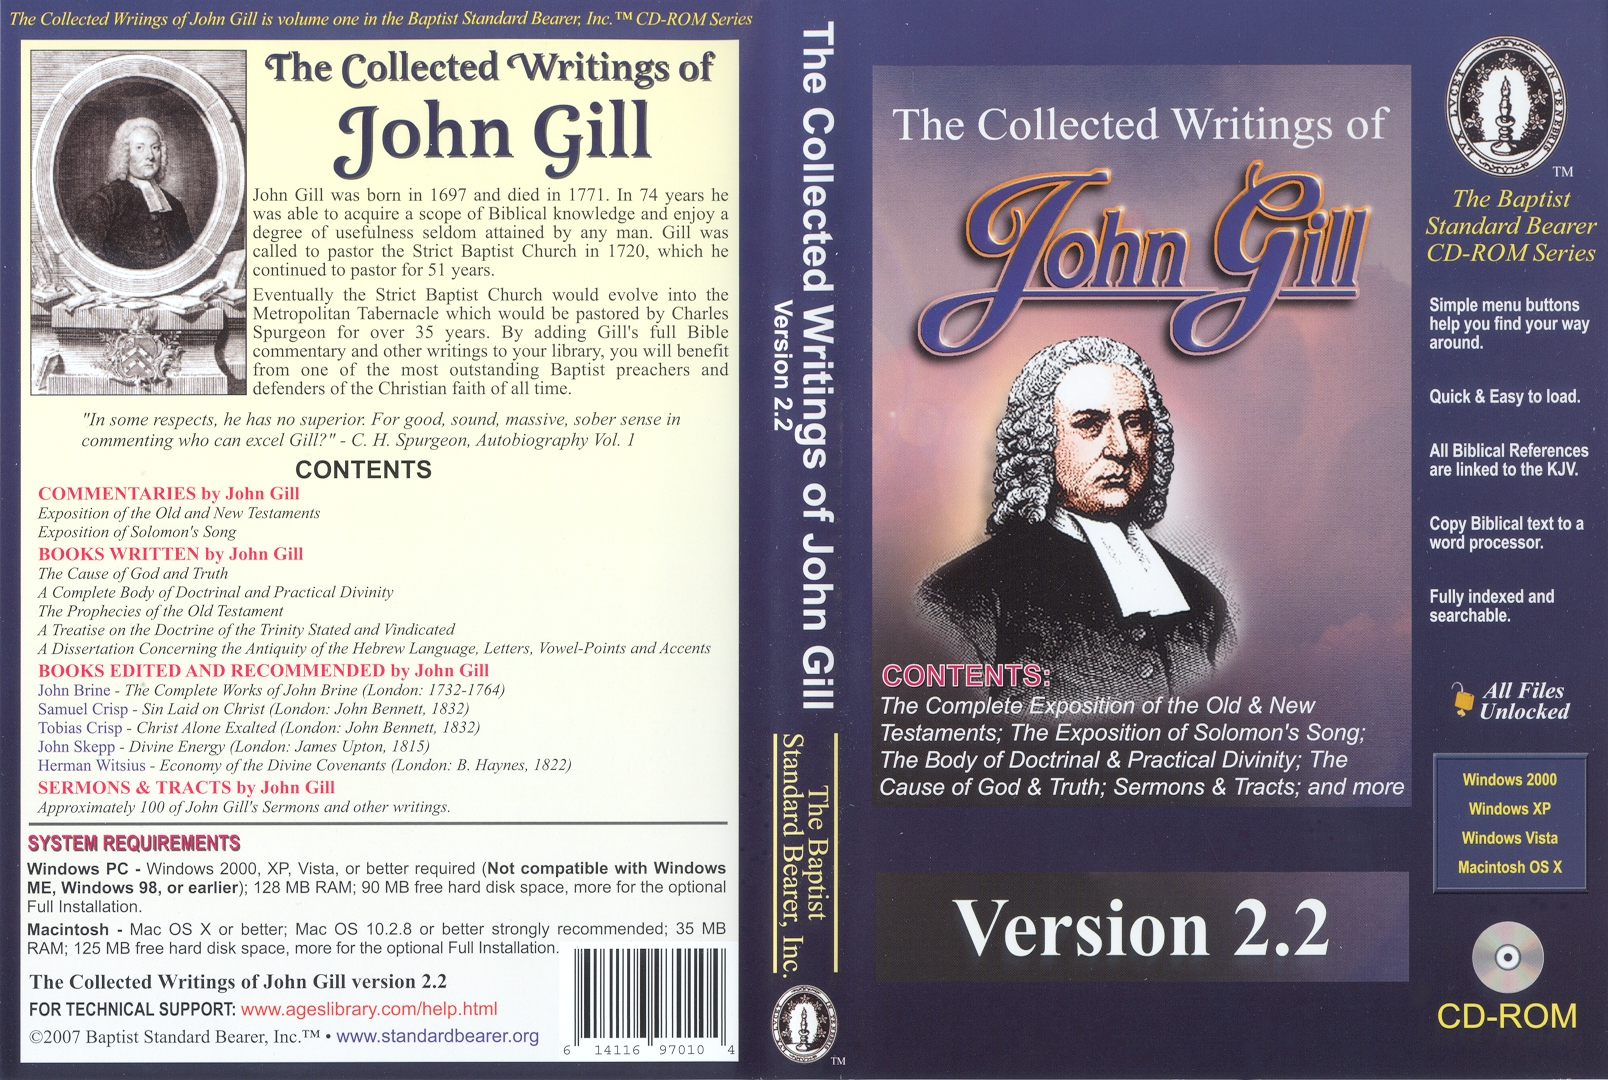 The Collected Writings of John Gill (CD-ROM)